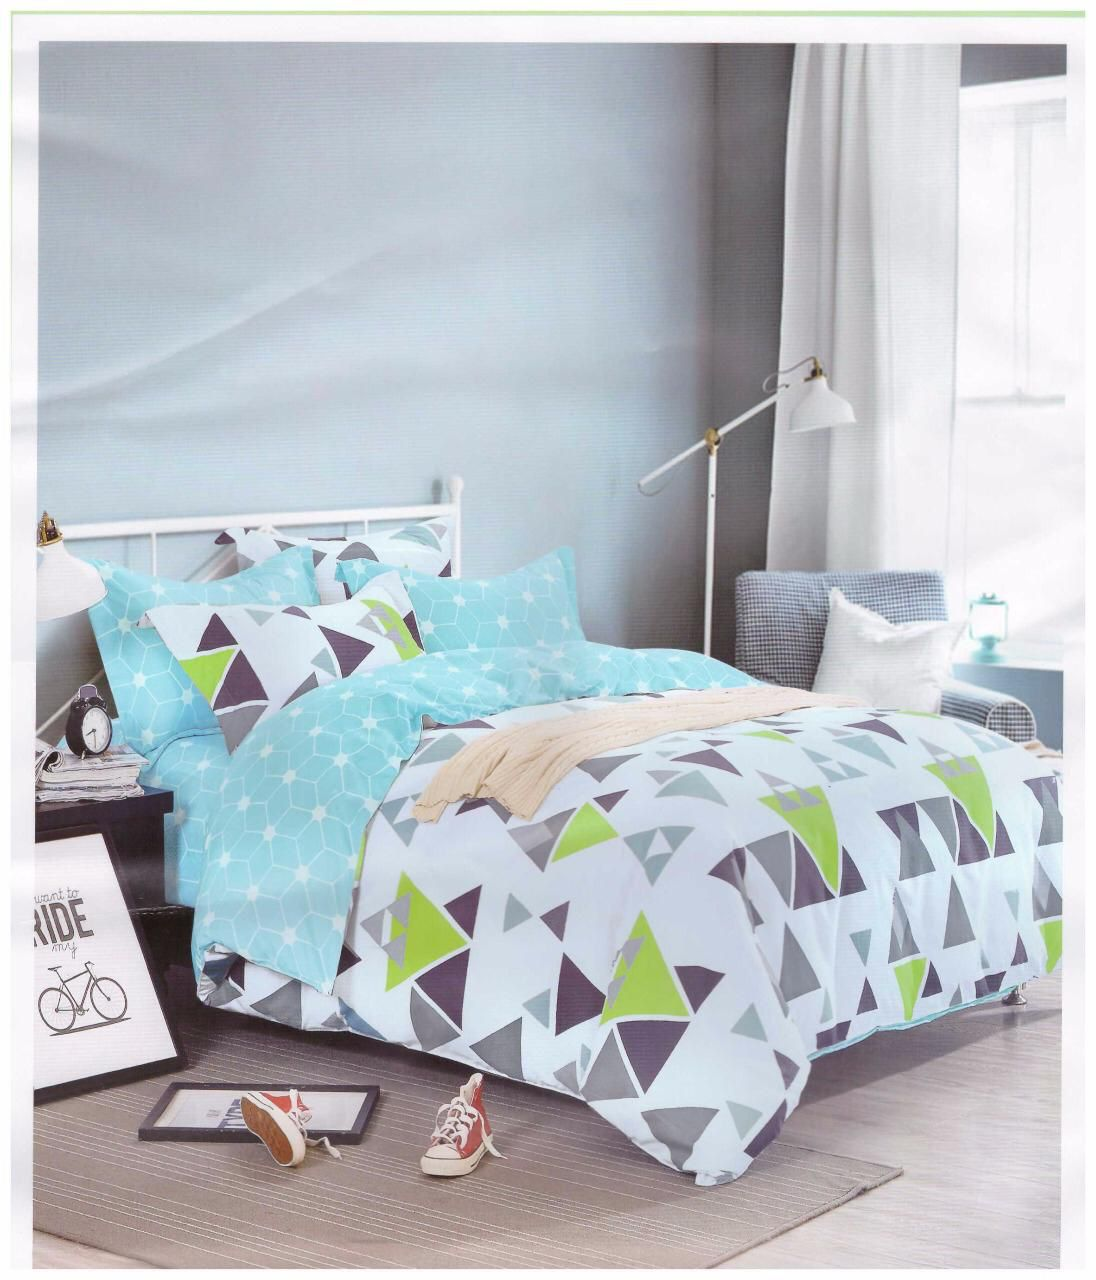 Wholesale Cotton Bed Sheets Manufacturers And Suppliers Bed